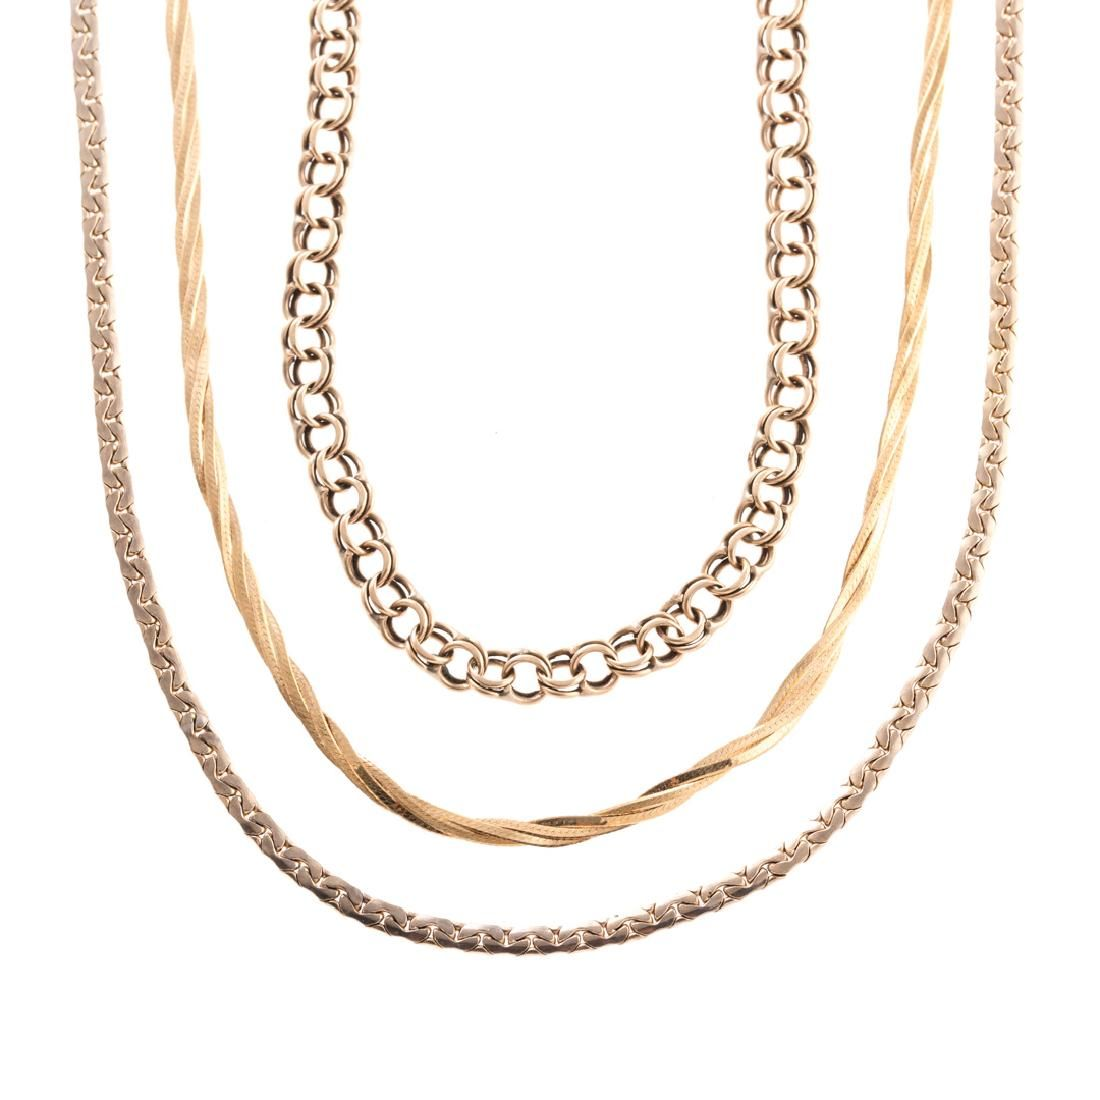 A Pair of Gold Chain Necklaces and Bracelet